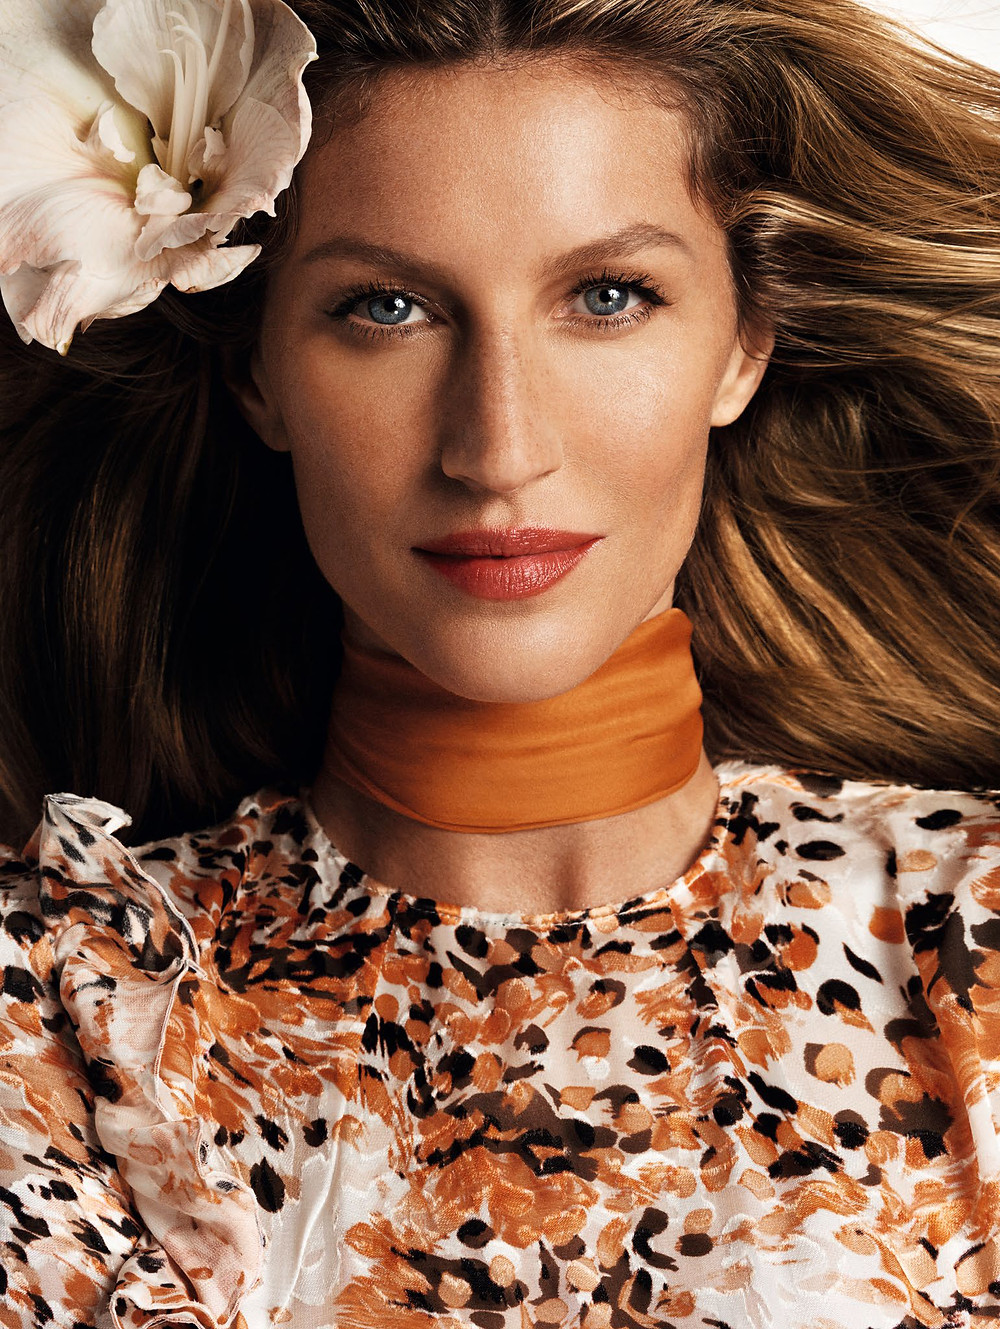 gisele-bc3bcndchen-by-mario-testino-for-vogue-china-march-2015-4